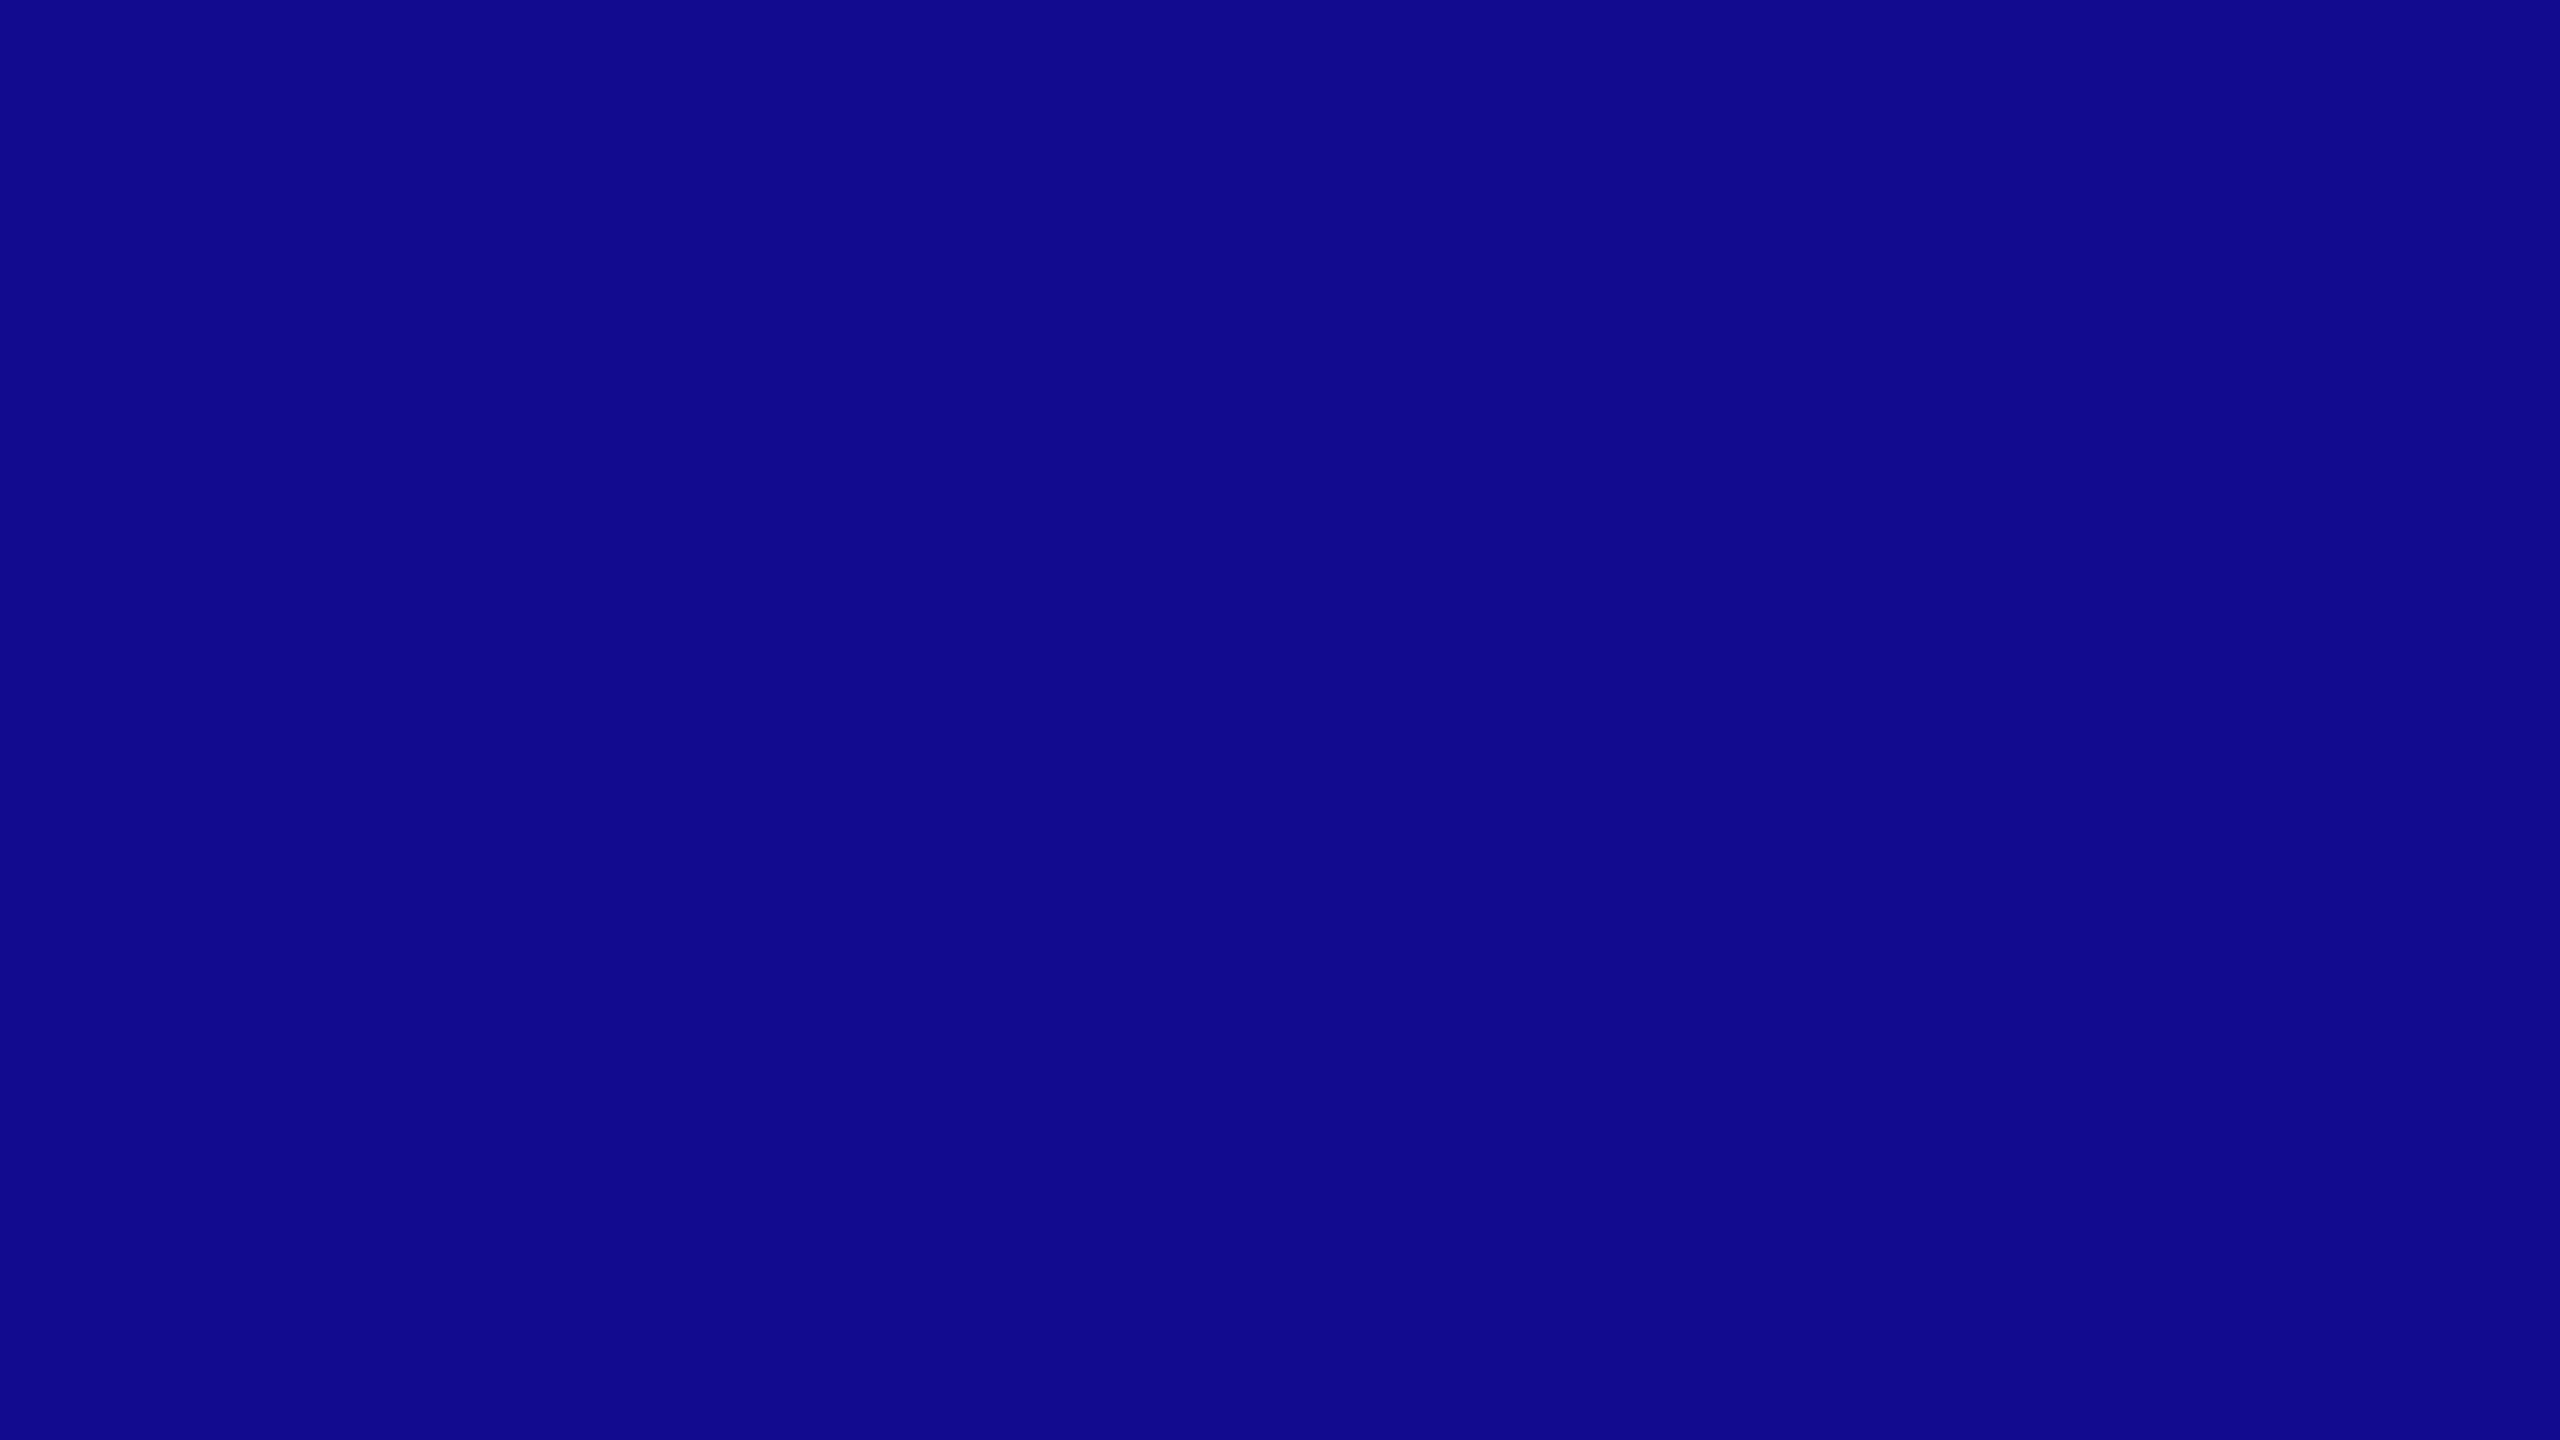 2560x1440 Ultramarine Solid Color Background 2560x1440